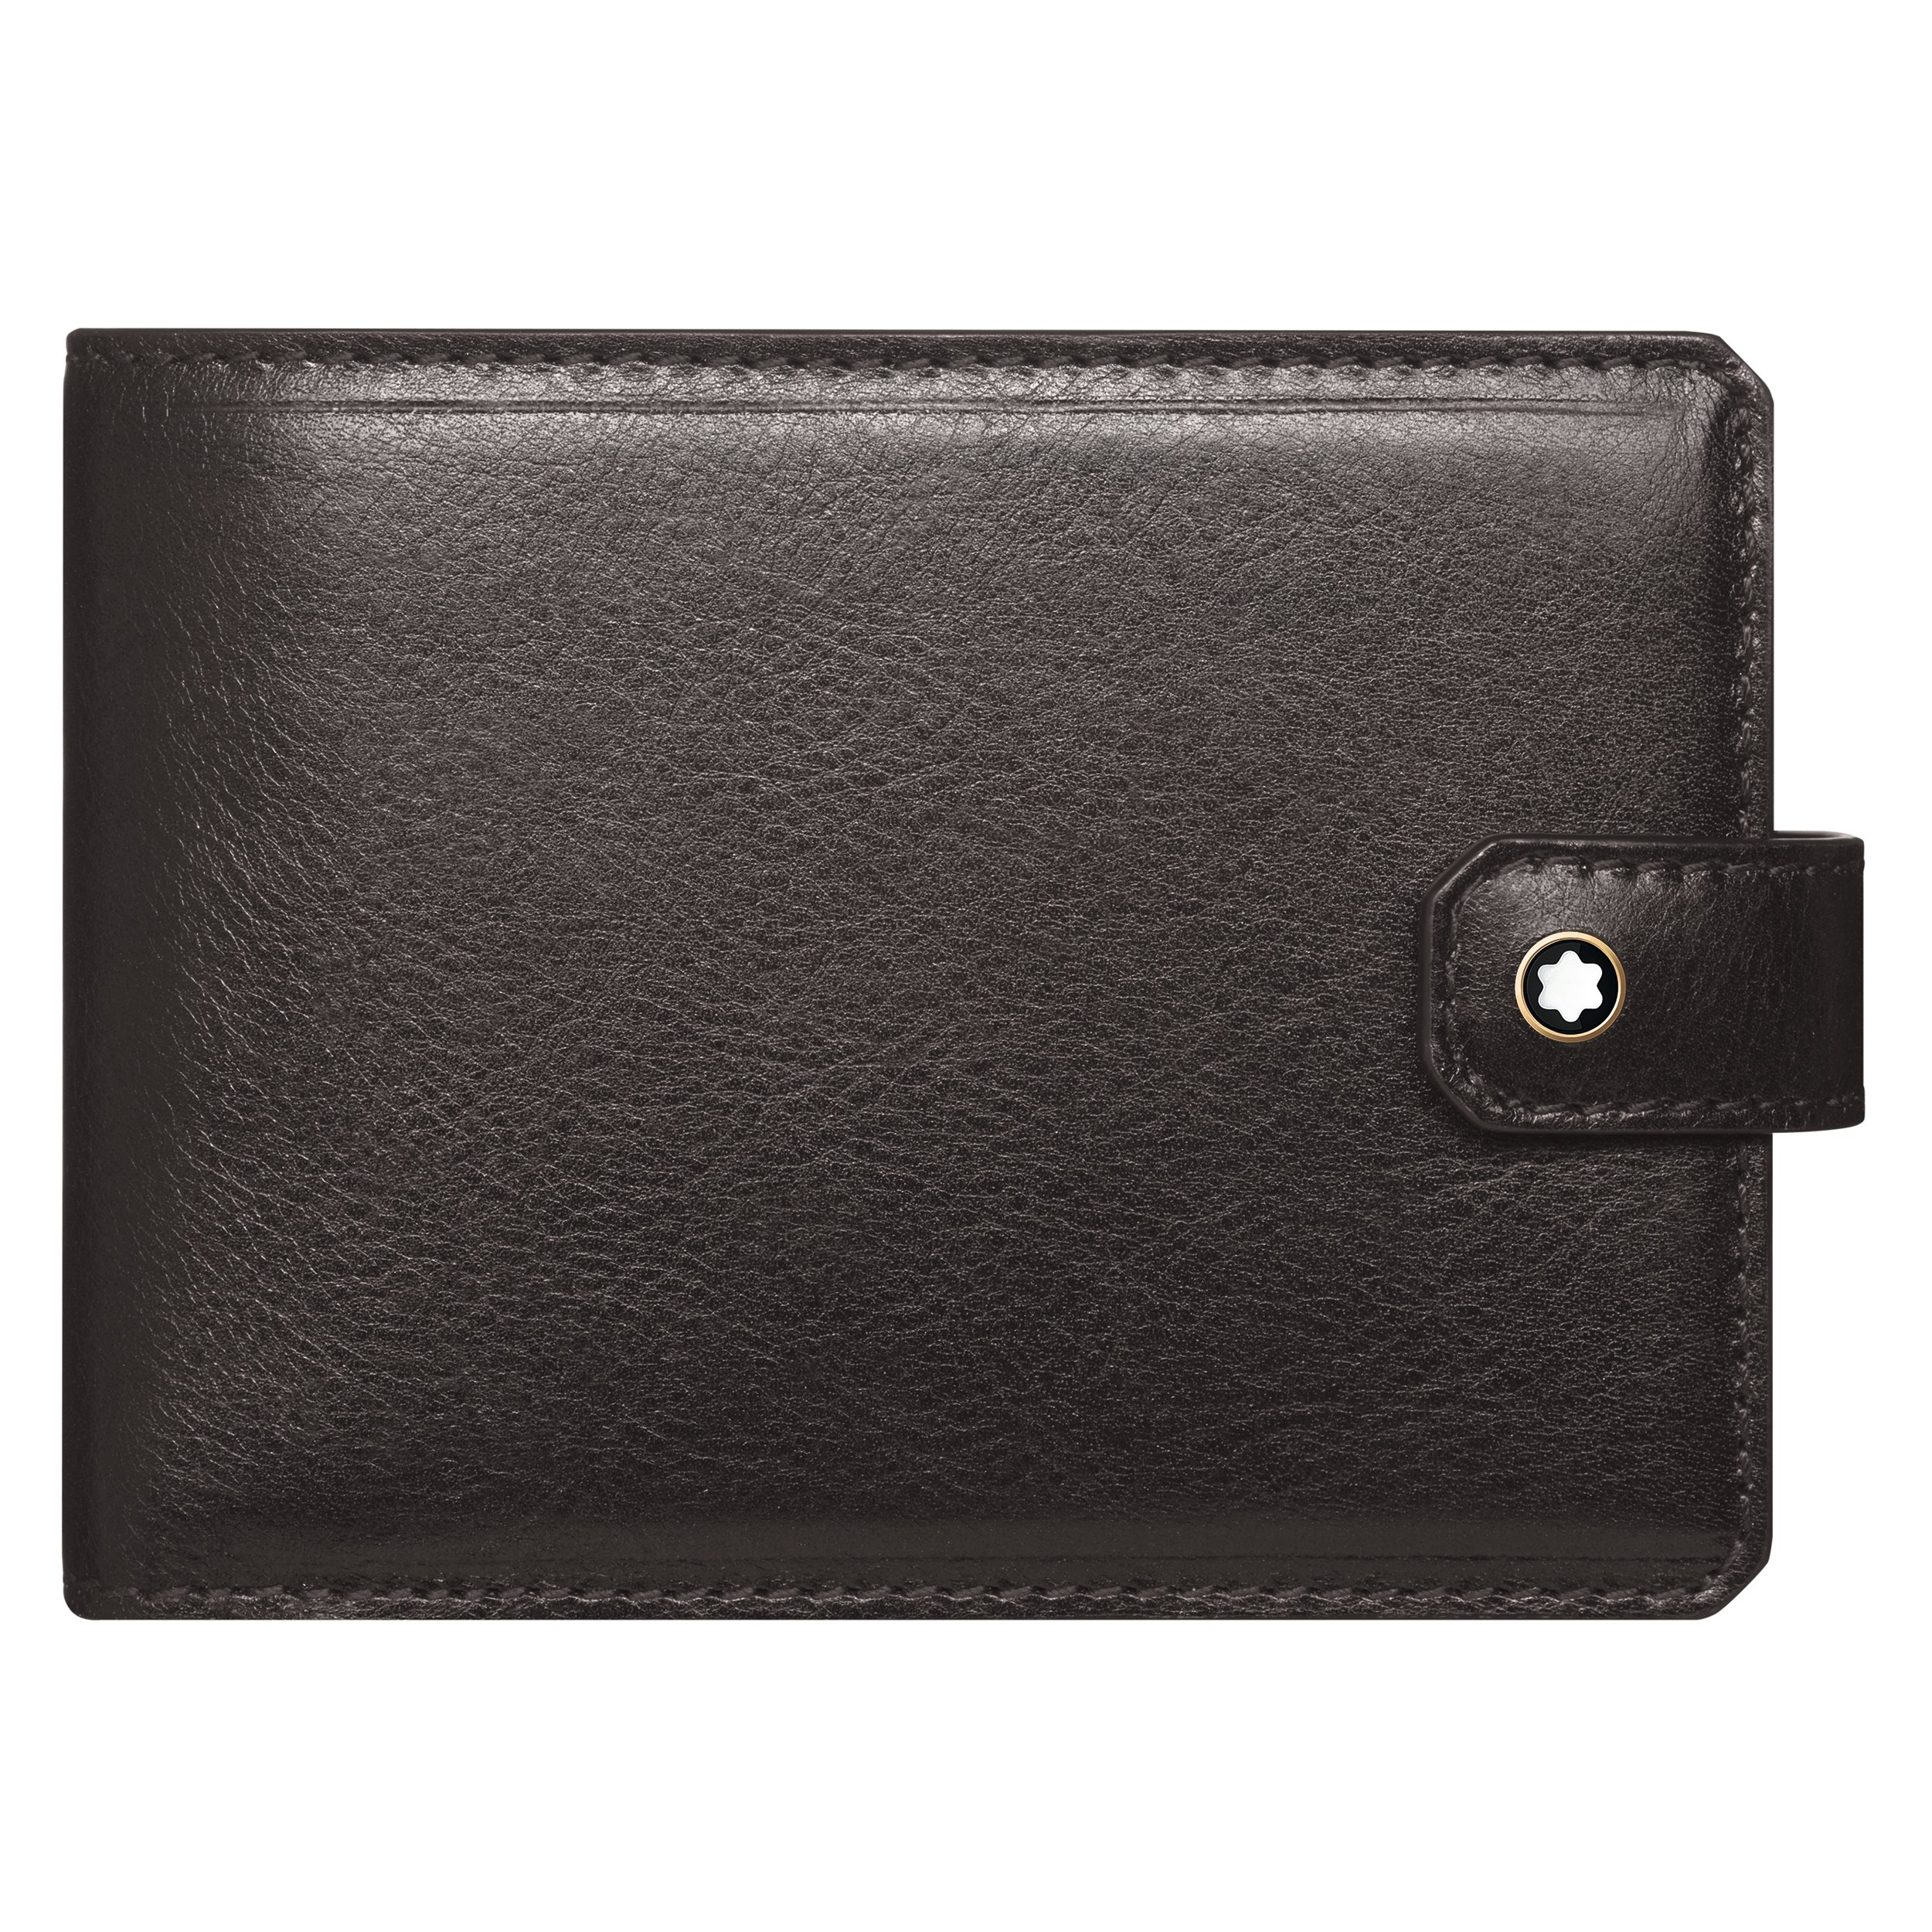 Montblanc 116818 1926 Heritage Wallet 6cc with Removable Card Holder